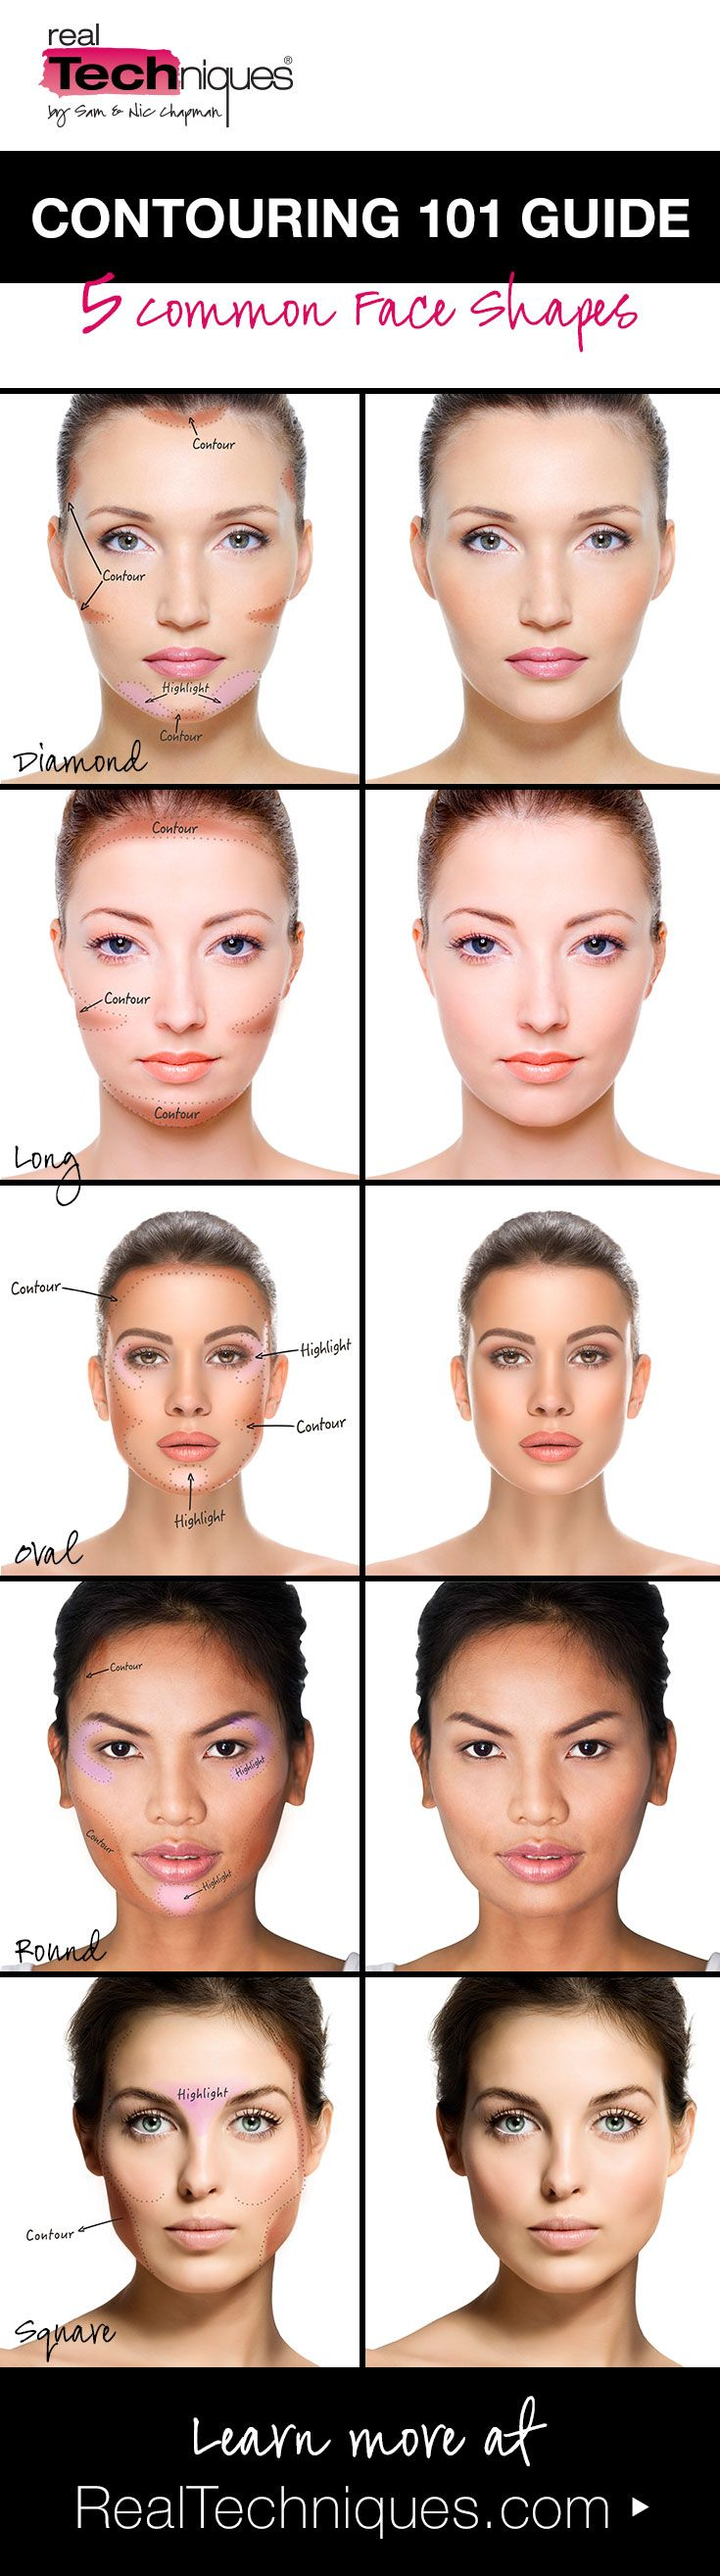 Contouring 11: How to contour based on your face shape. Click for